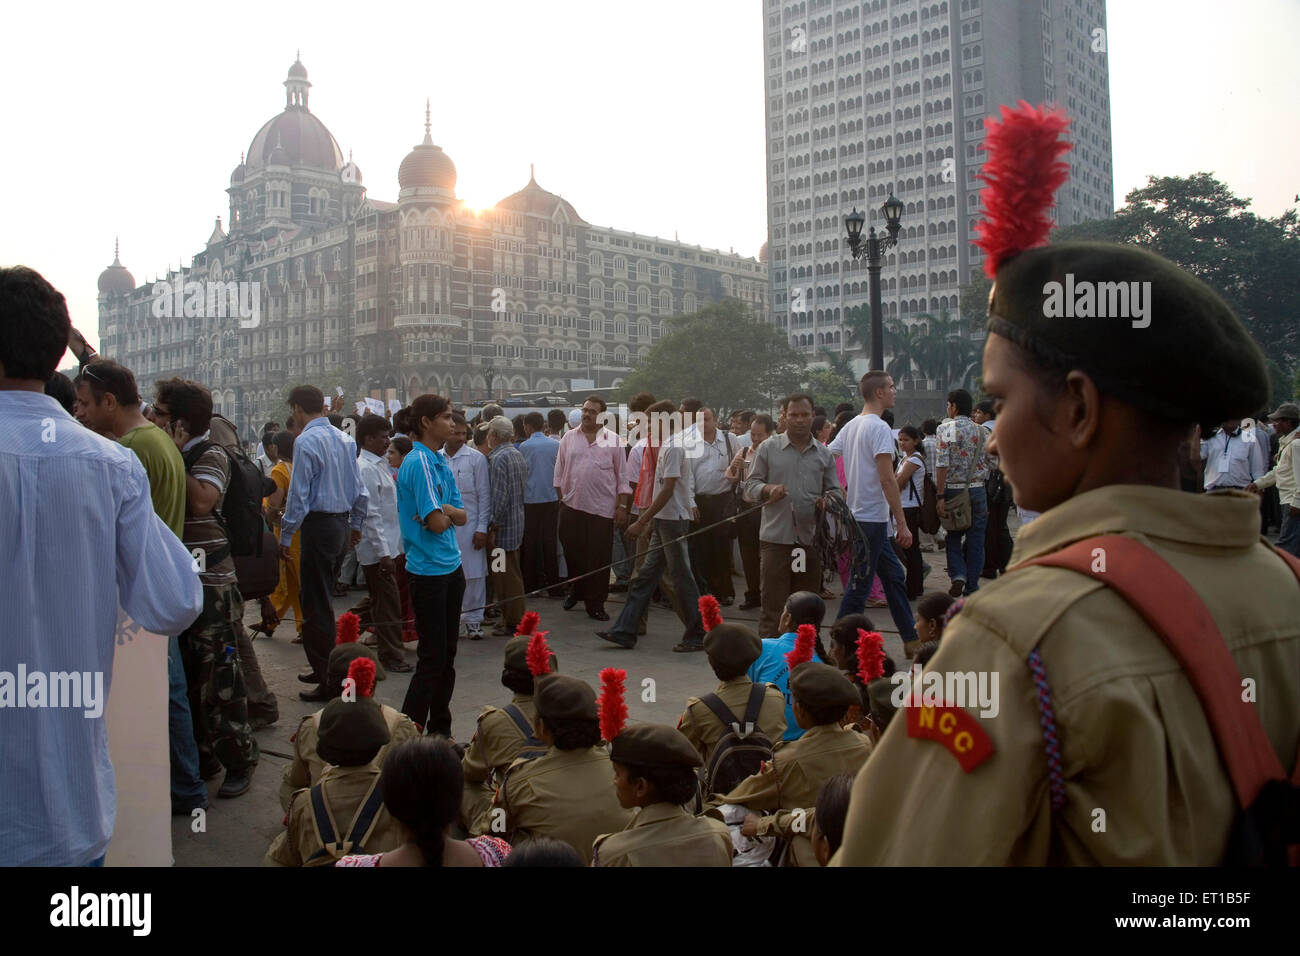 3rd December ; National Cadet Core NCC ; female cadets Taj Hotel ; people  protesting terror attacks 26th November - Stock Image